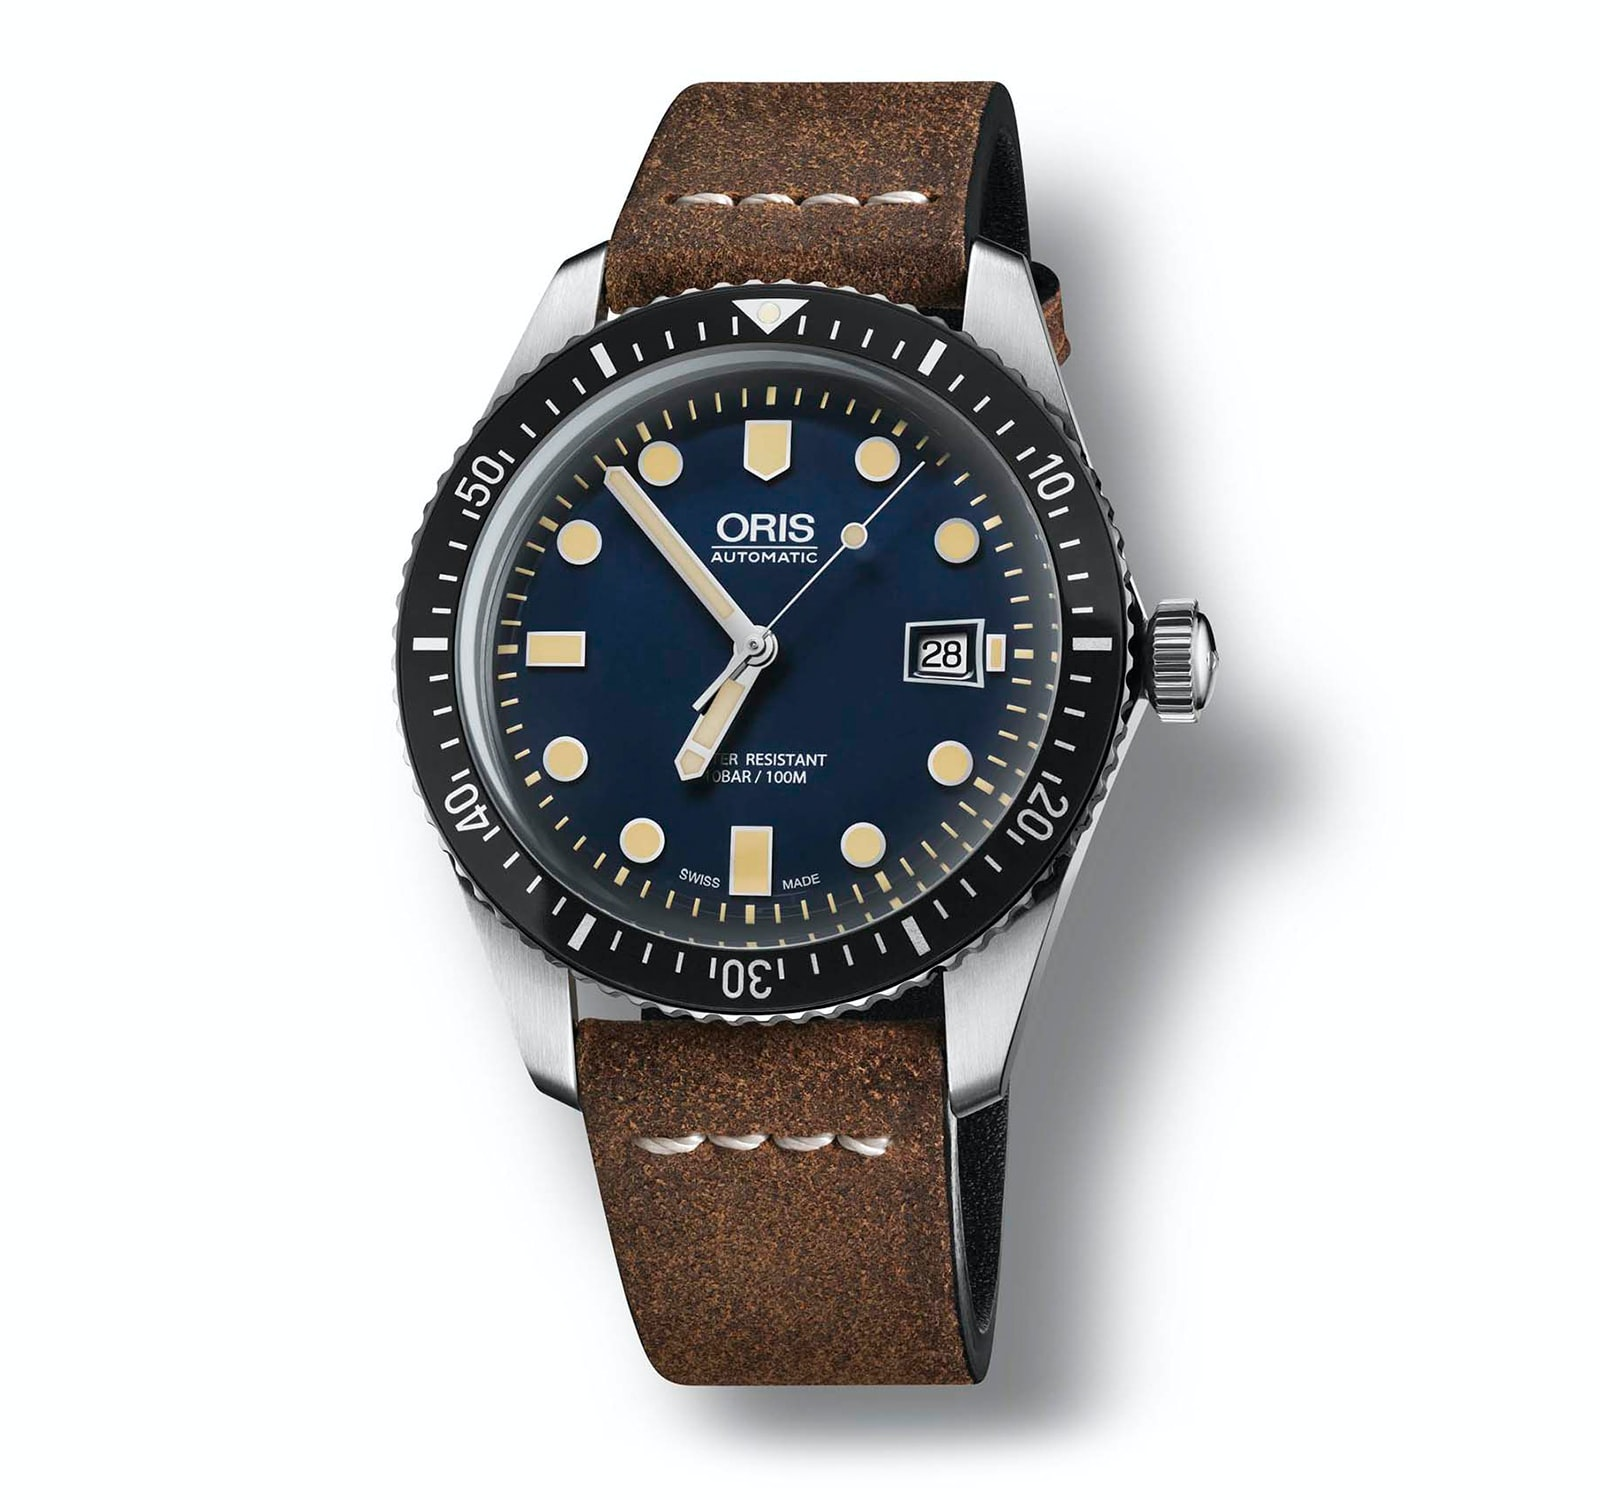 Oris Divers Sixty-Five watch Introducing: Three New Divers From Oris – One Heritage Update, And Two Limited Editions Supporting Good Causes Introducing: Three New Divers From Oris – One Heritage Update, And Two Limited Editions Supporting Good Causes 222323